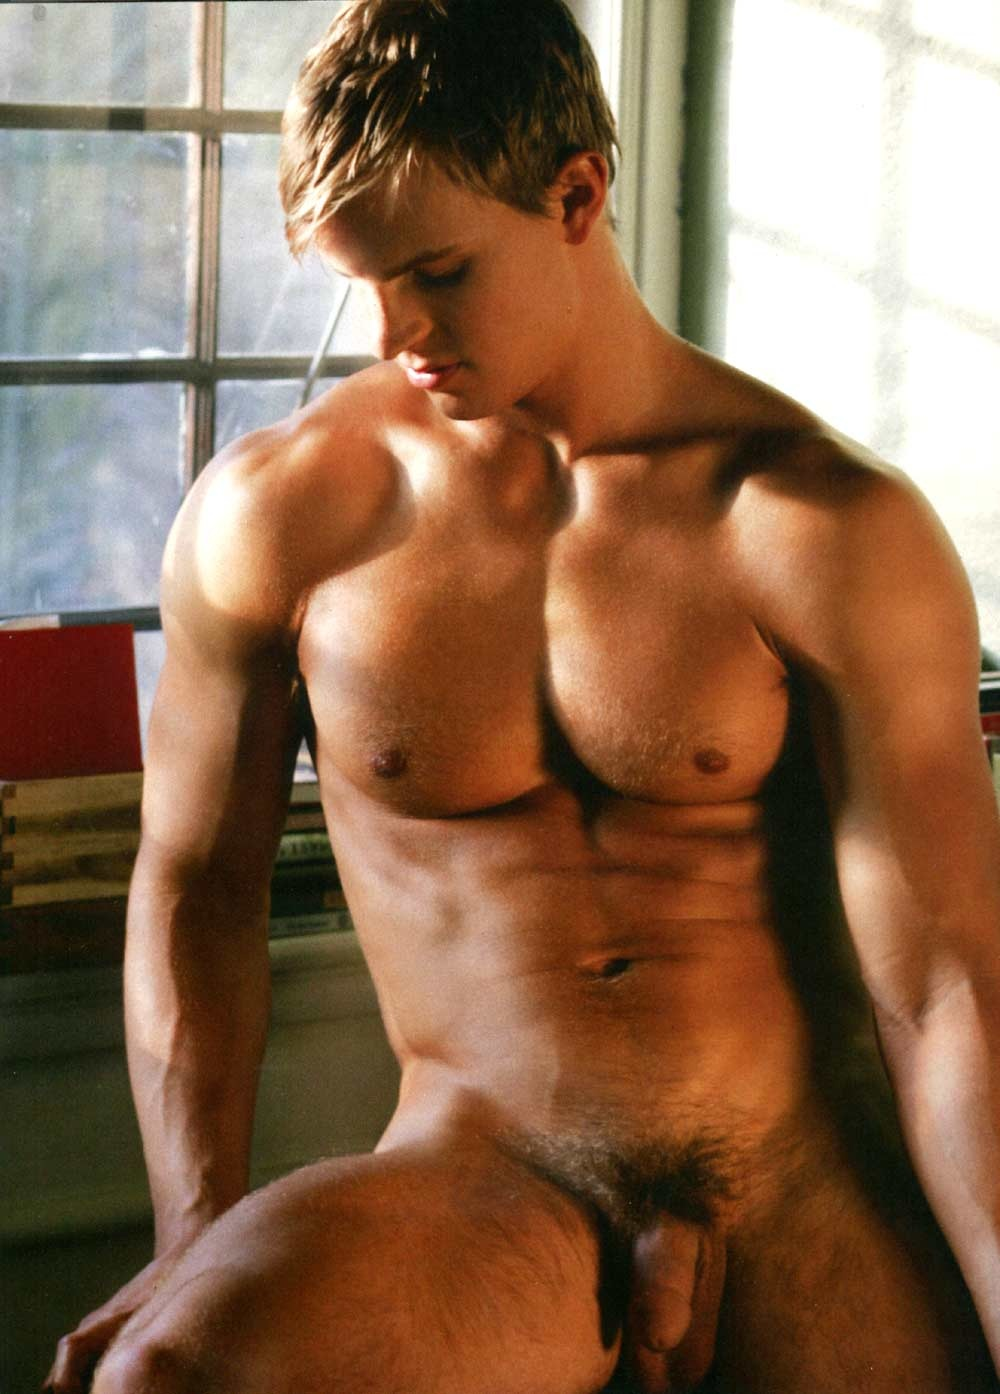 Naked Hot Man 21